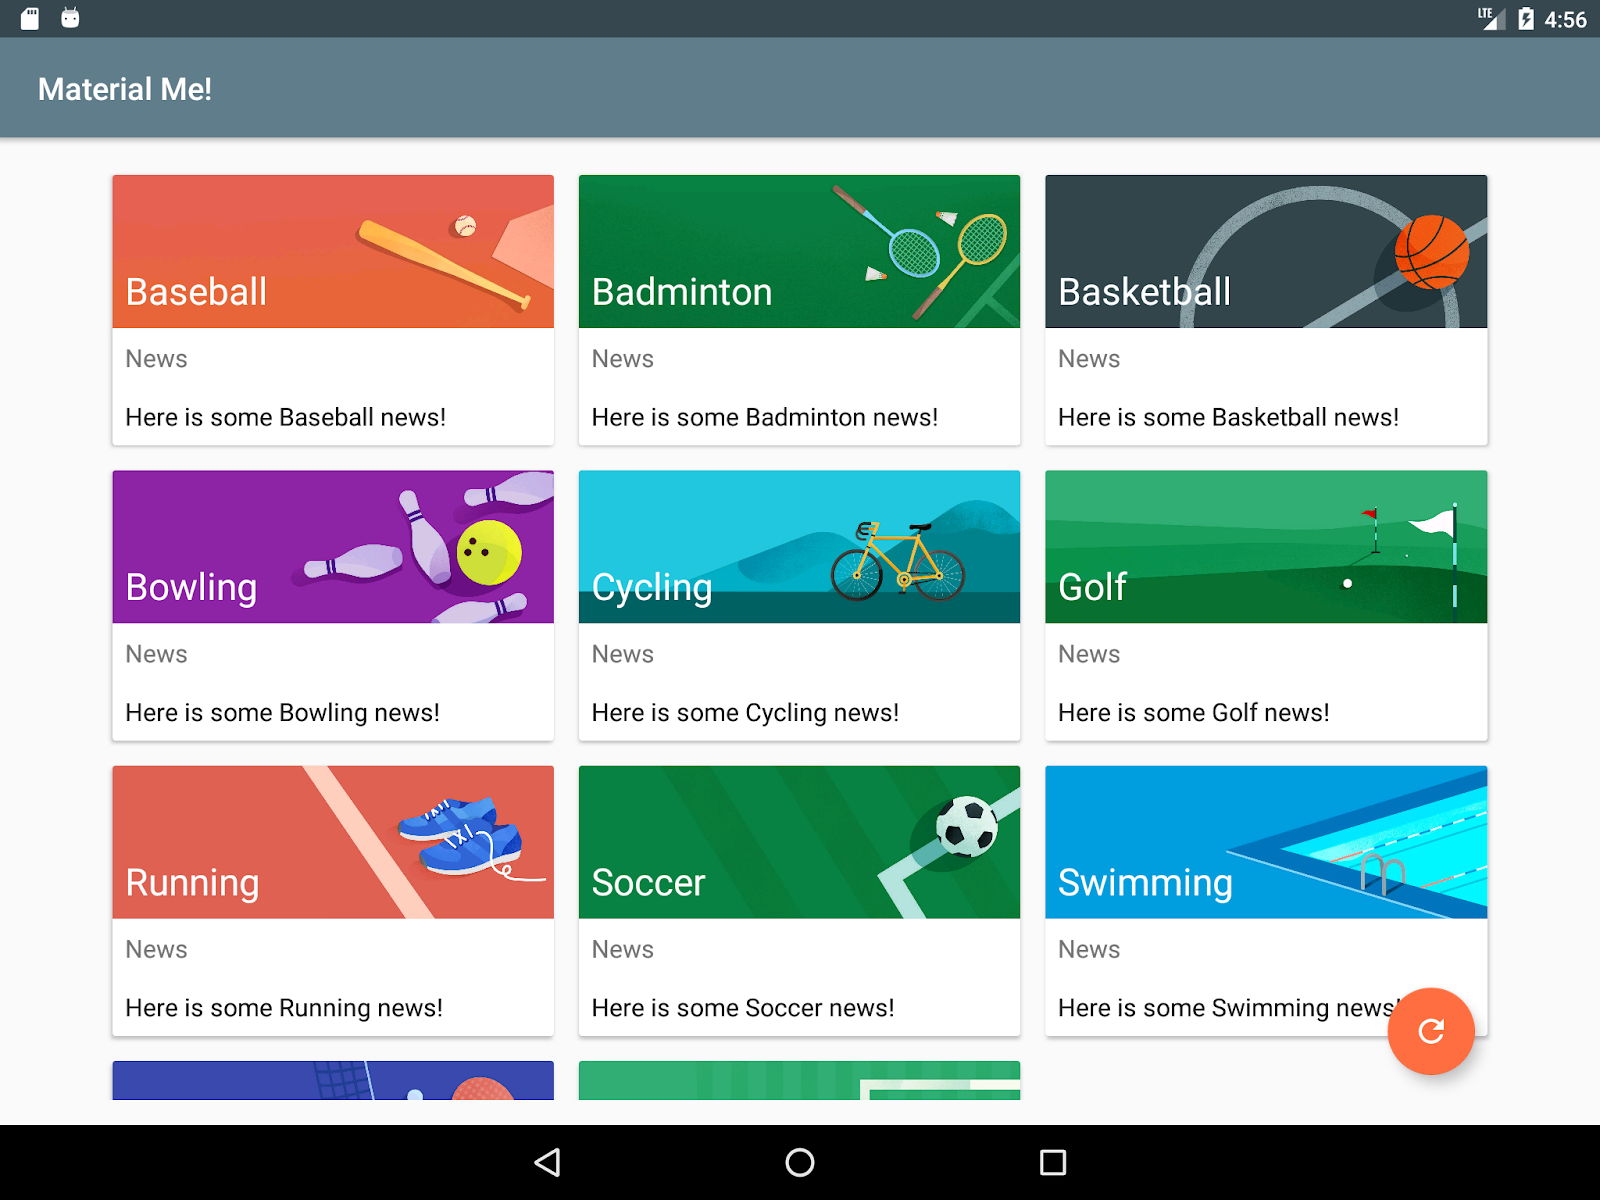 Tablet running the MaterialMe app with qualifiers to show 3 columns in landscape mode